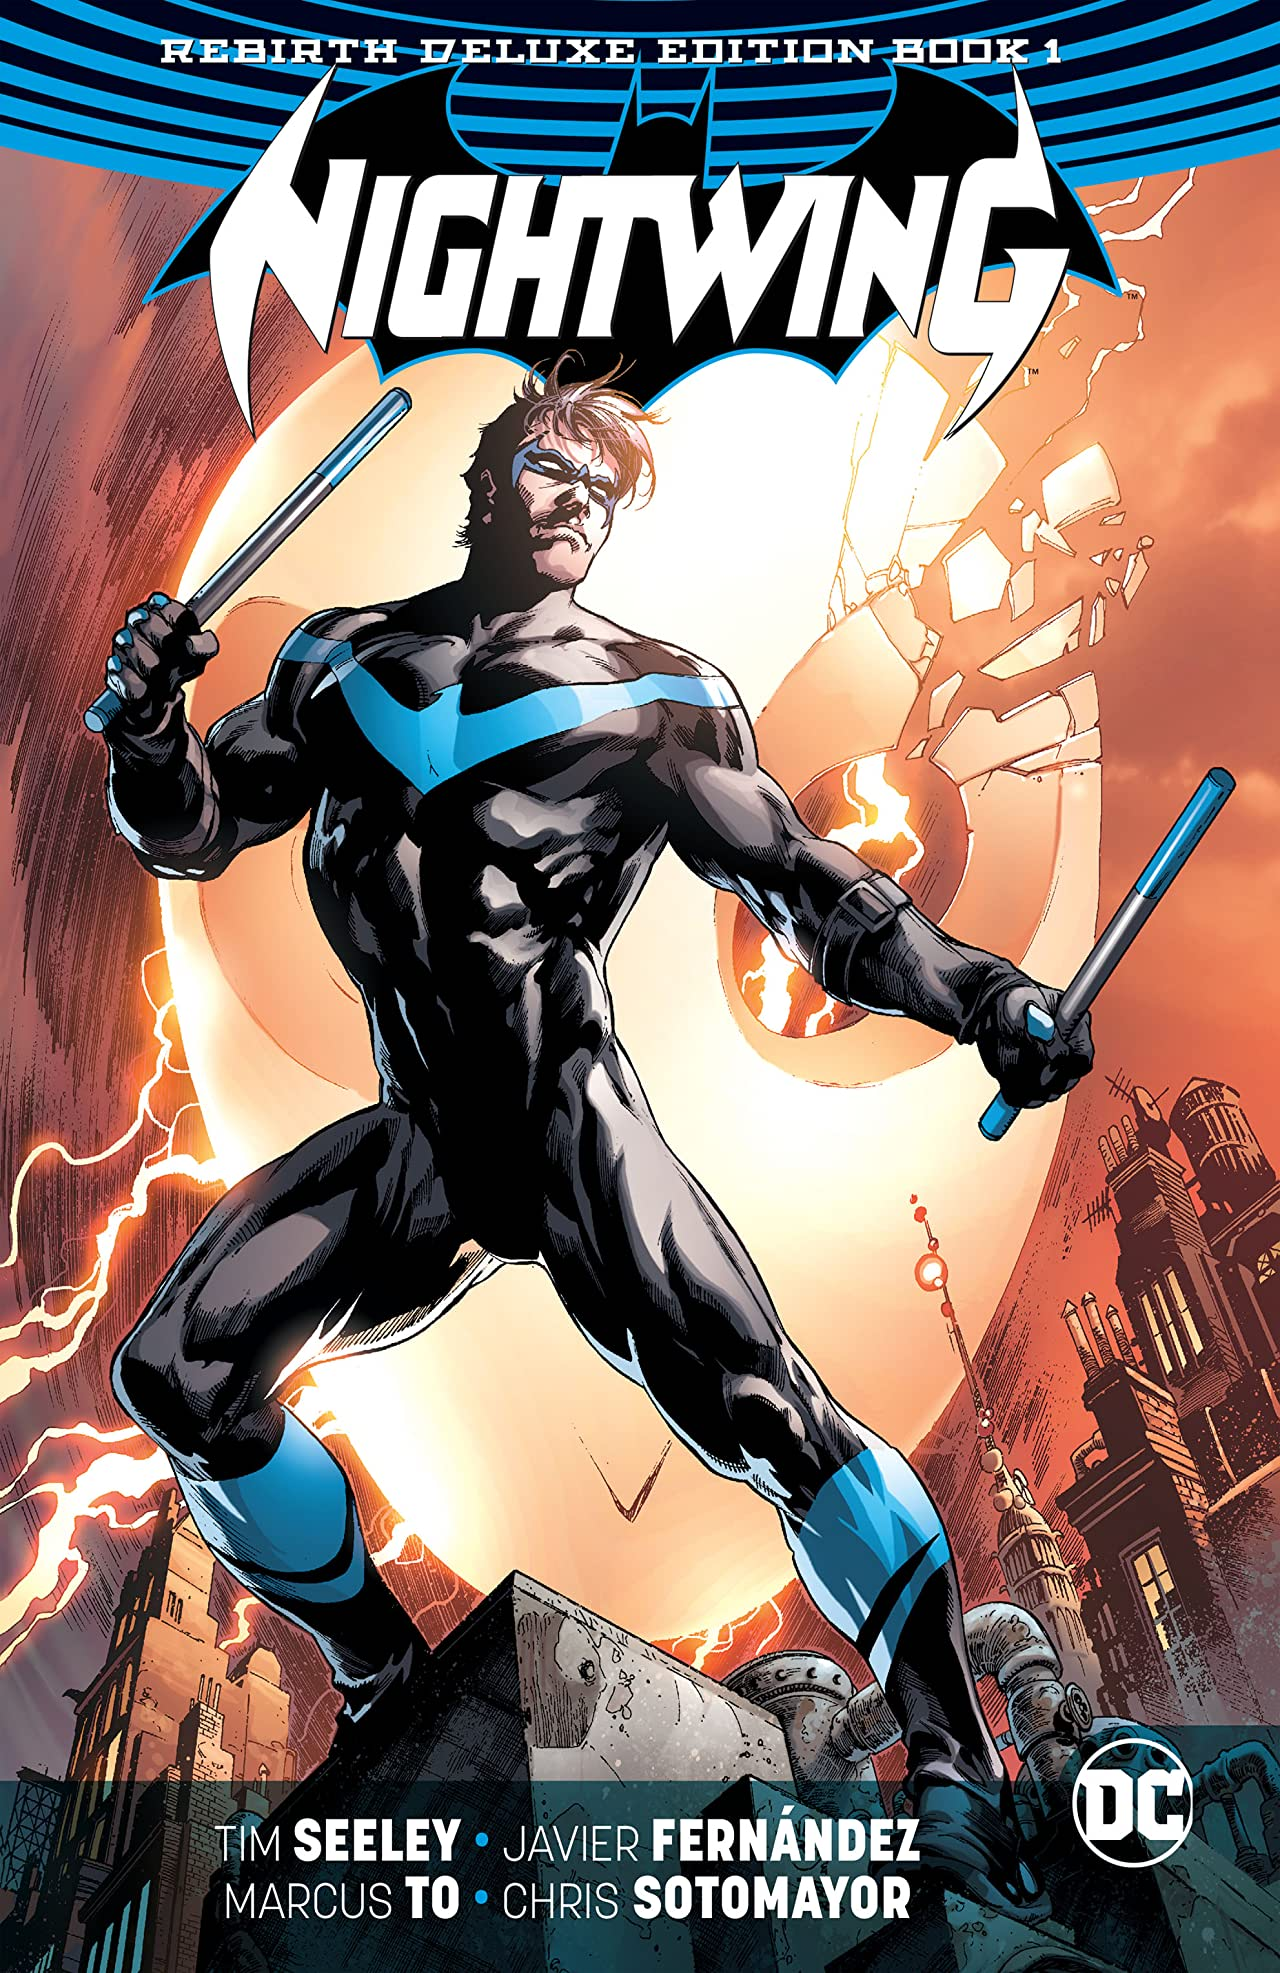 Nightwing: The Rebirth Deluxe Edition - Book 1